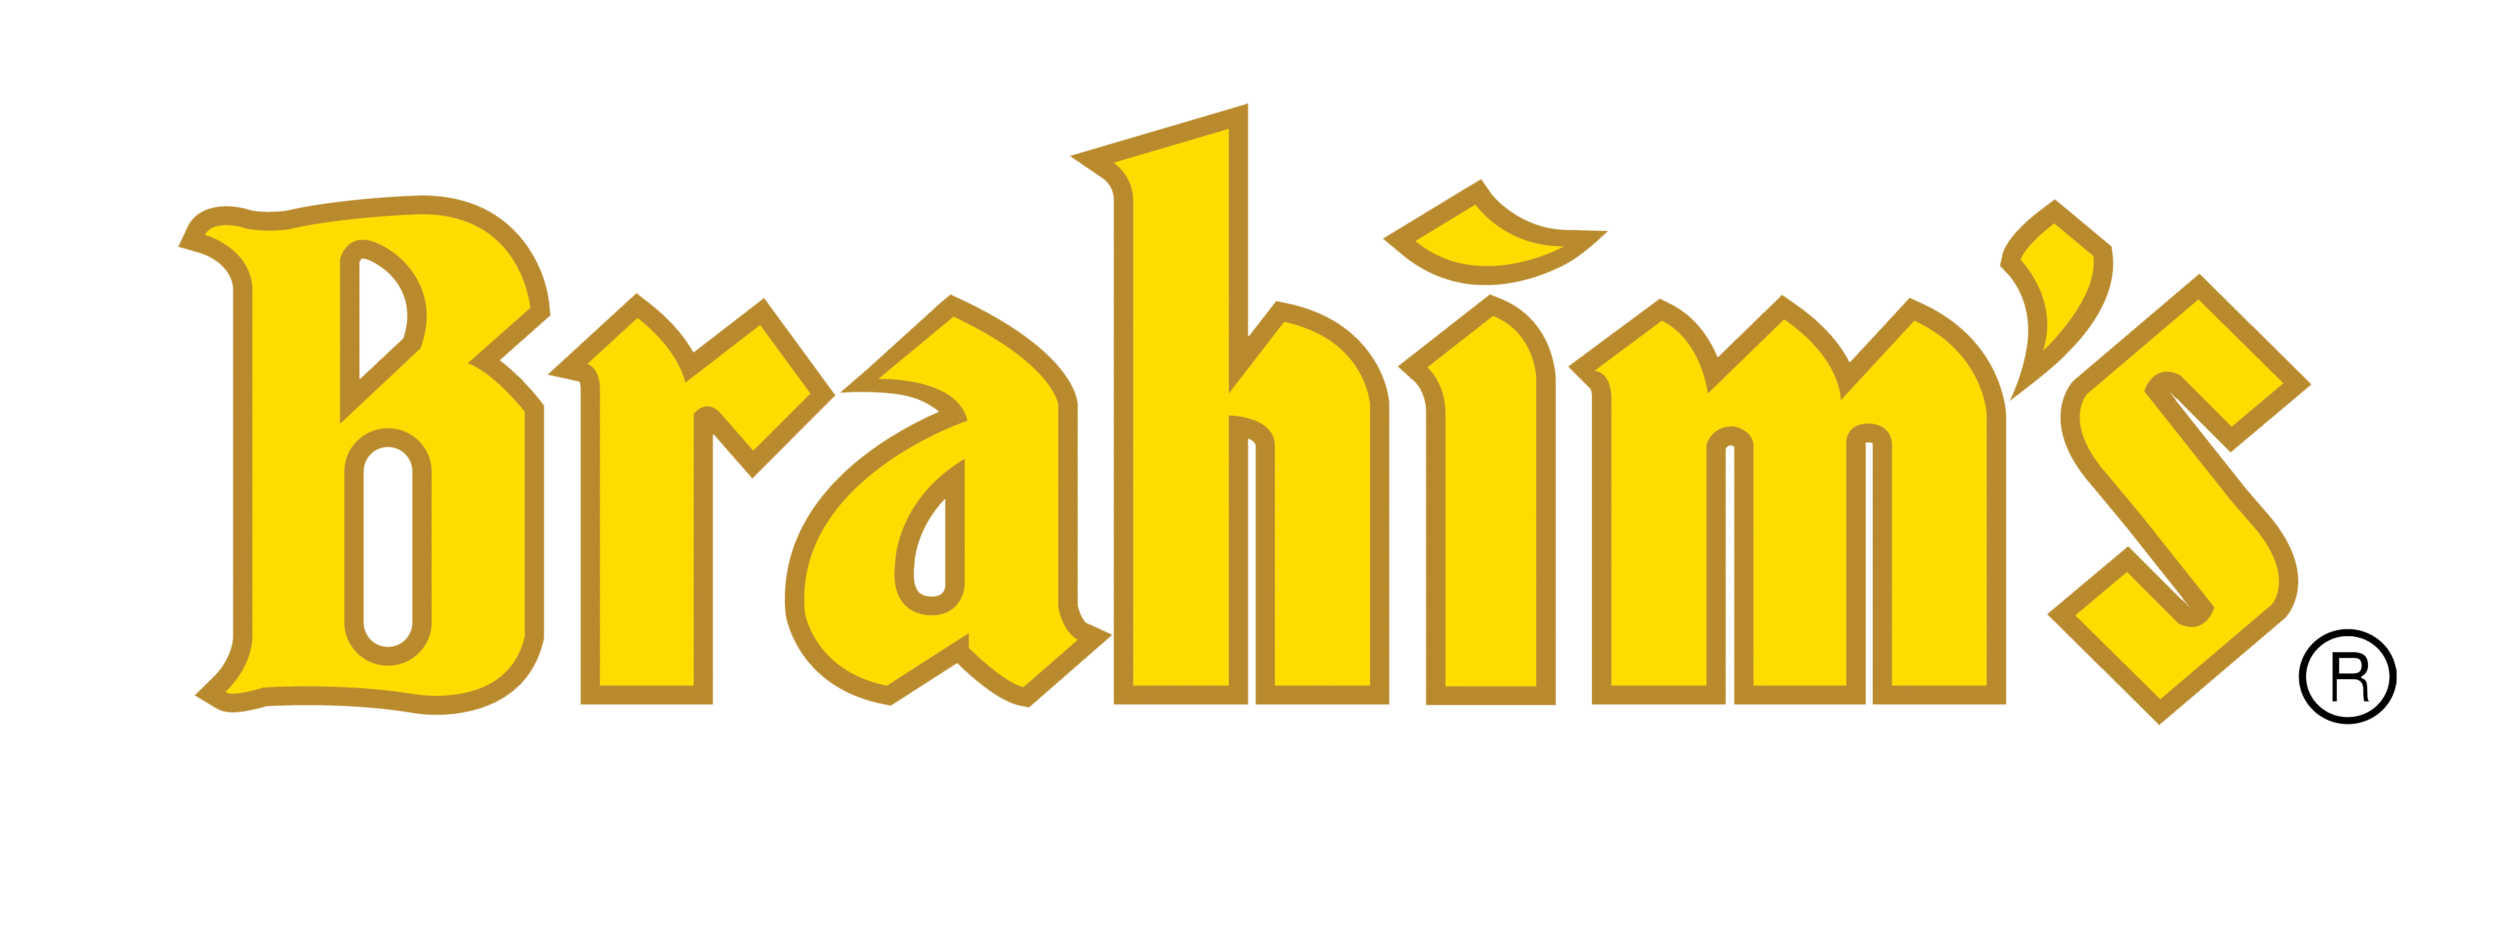 Brahims Unedited.png